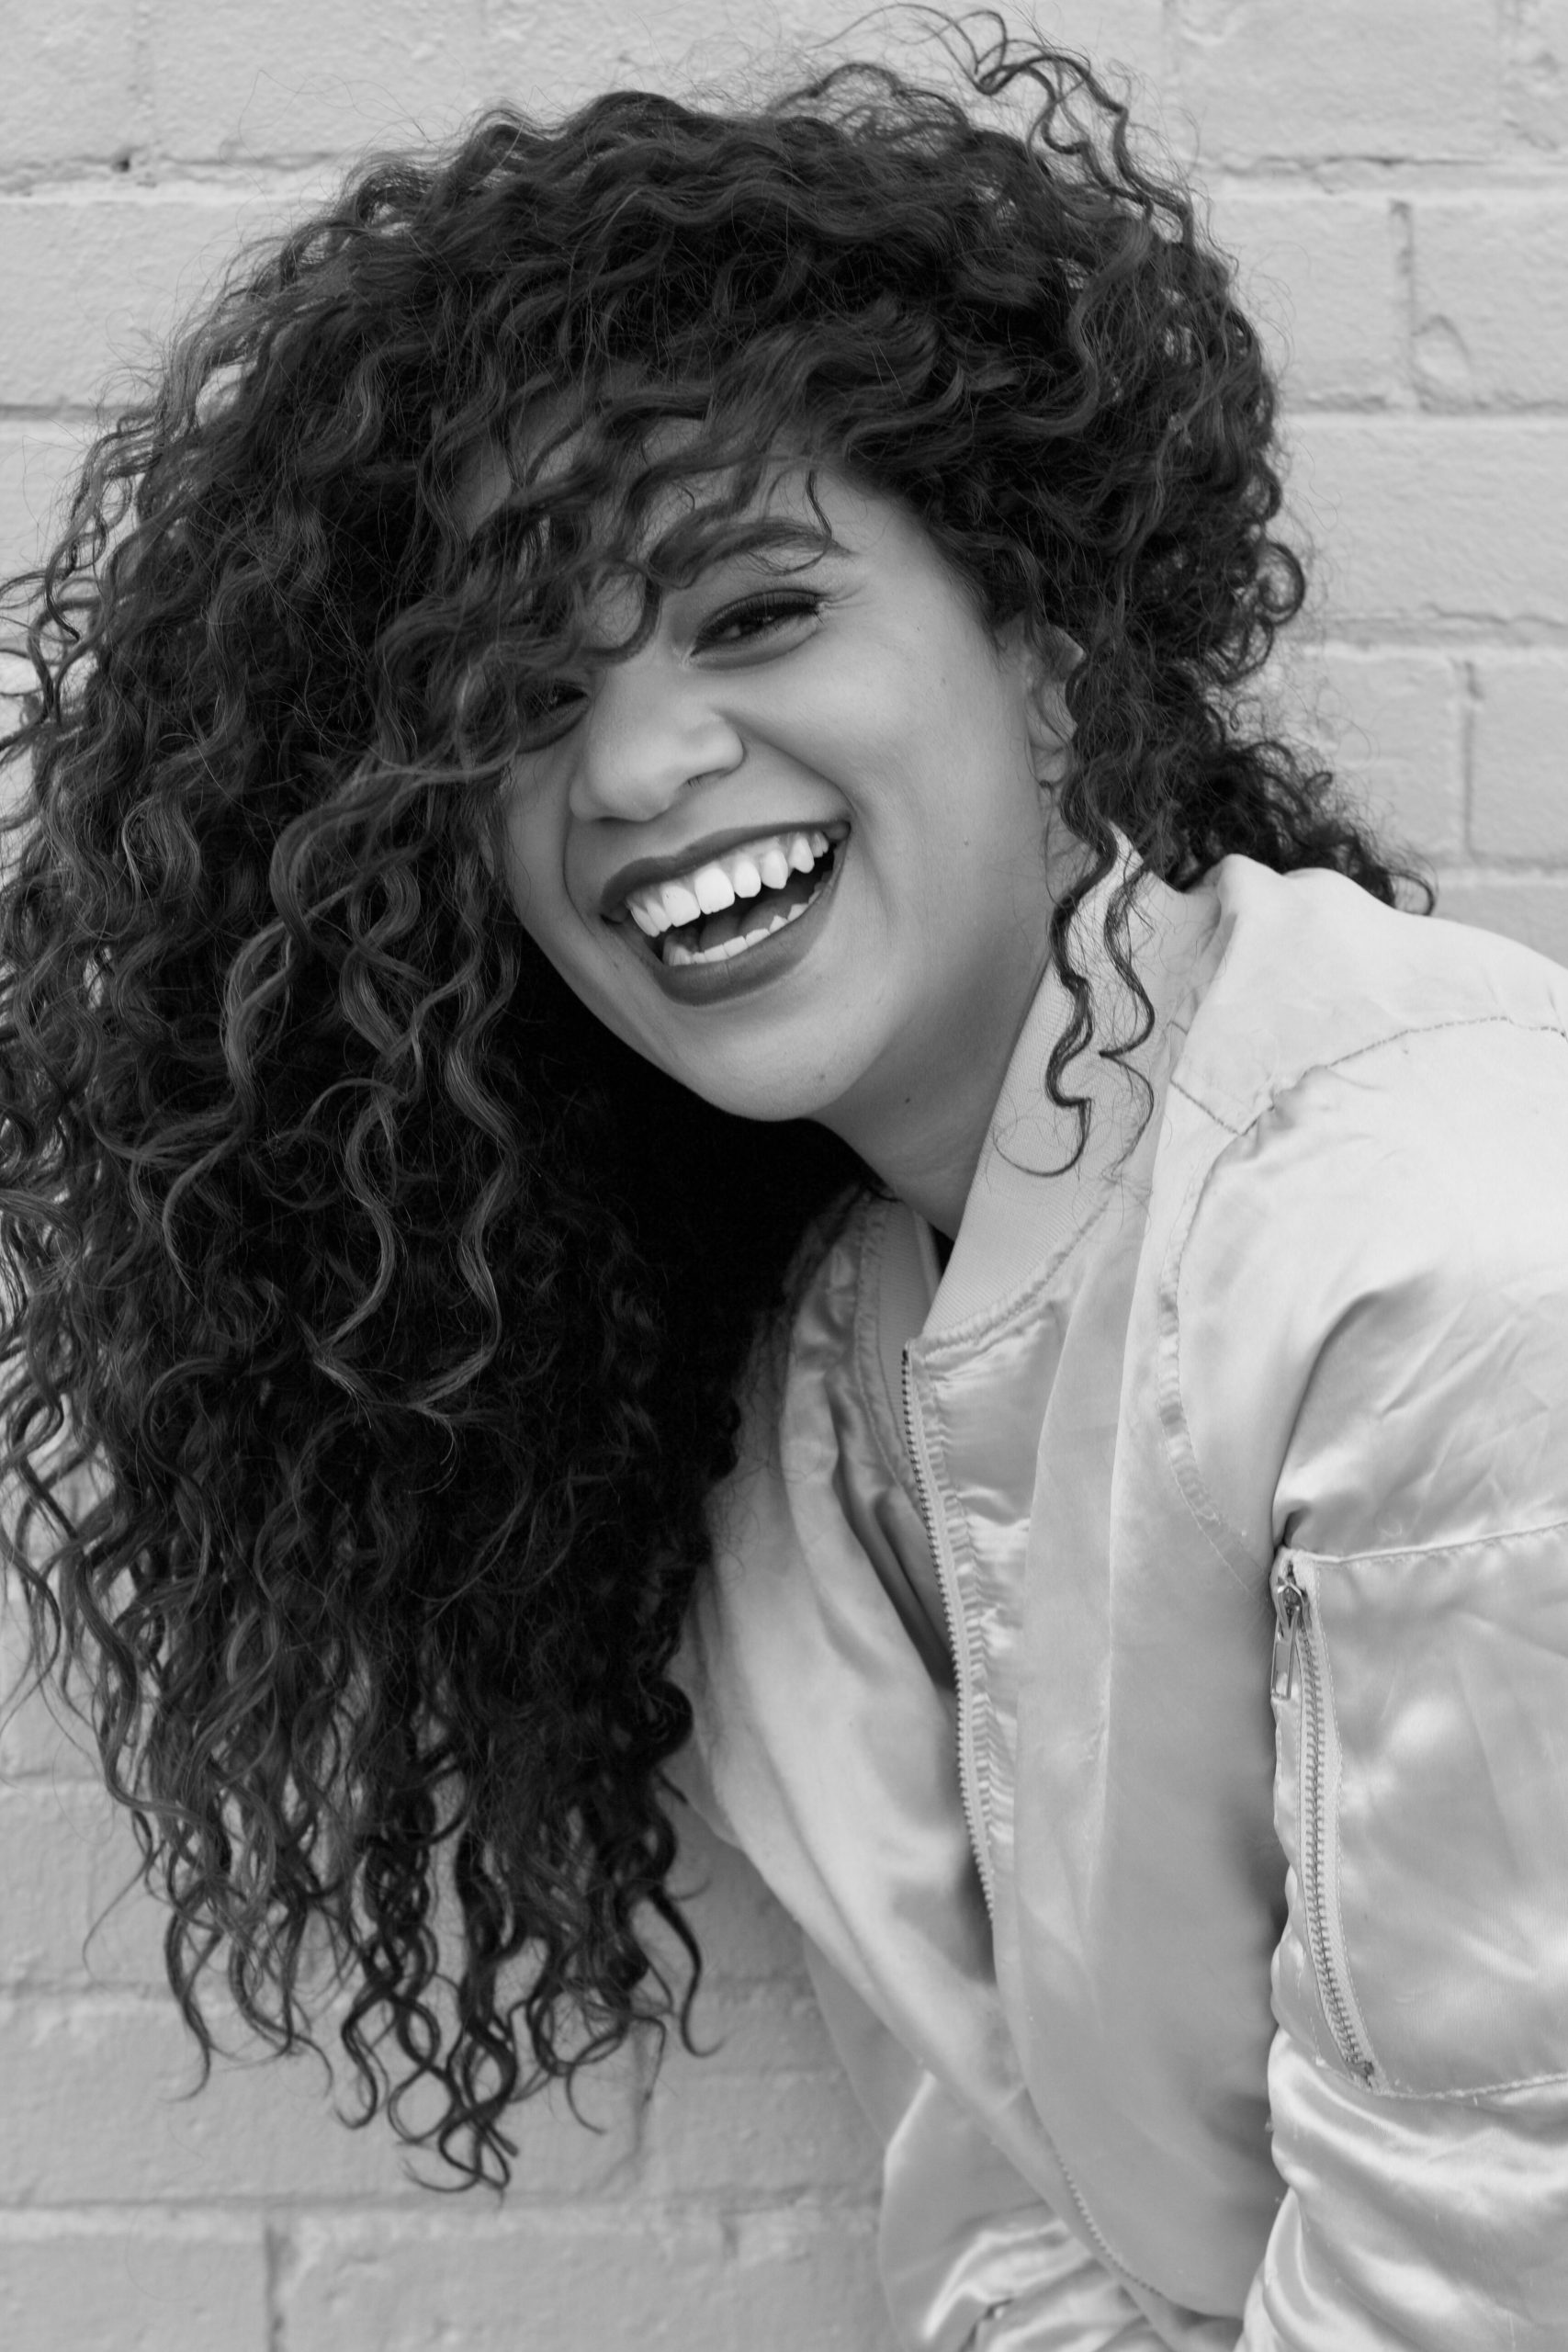 Woman-Laughing-With-Loose-Curls-Human-Hair-Extensions